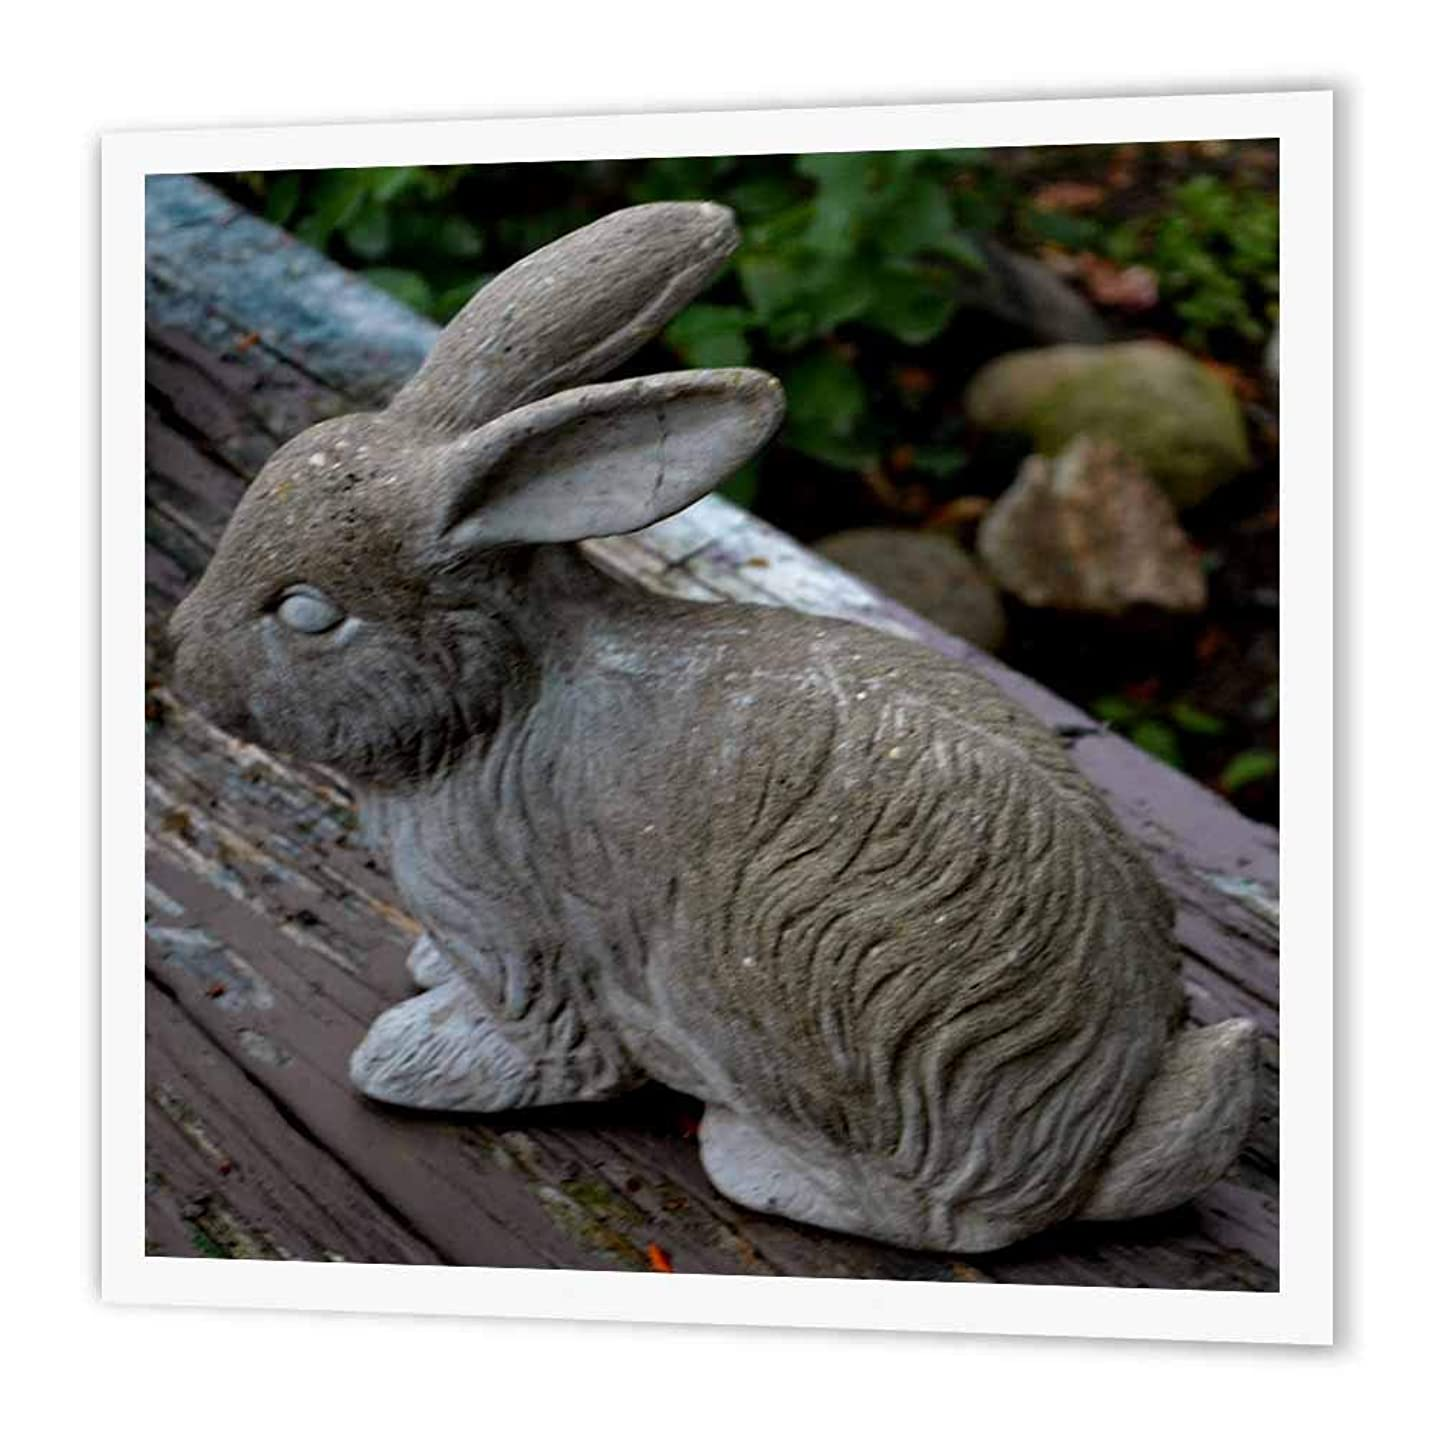 3dRose ht_165305_3 A Sweet Little Bunny Statue That Sits in A Garden - Iron on Heat Transfer, 10 by 10